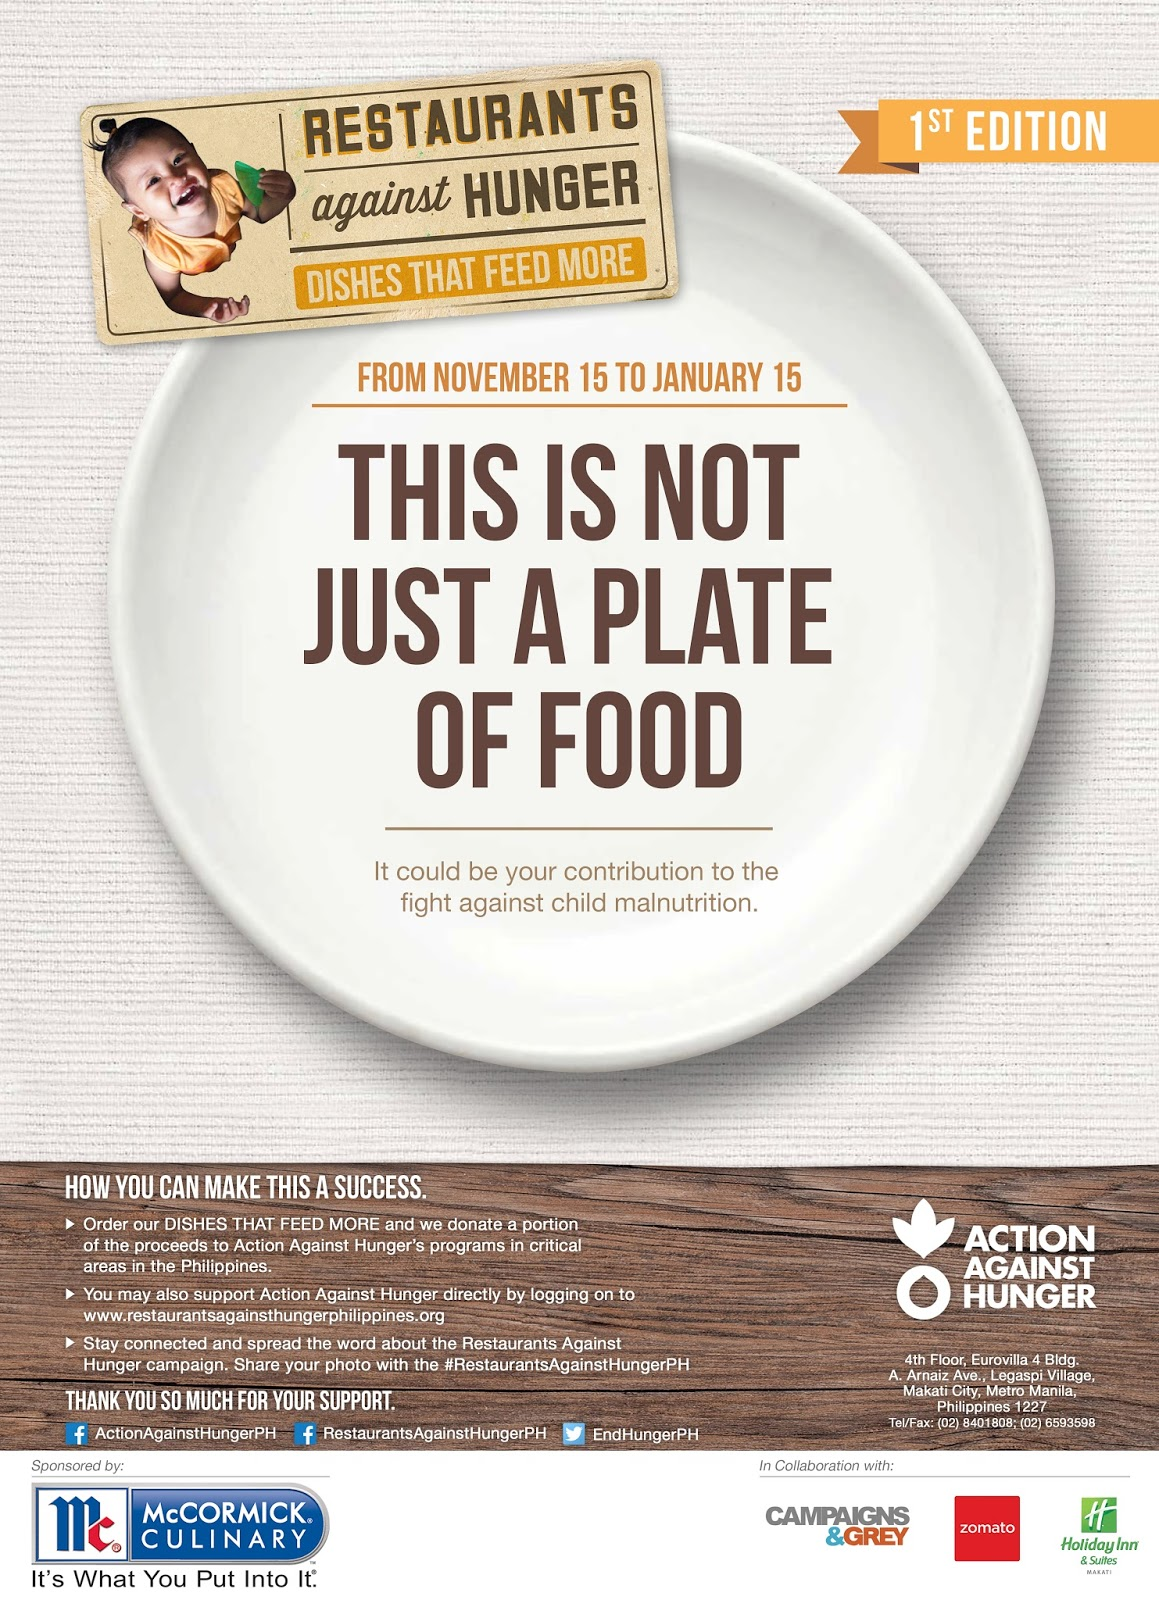 Restaurants Against Hunger